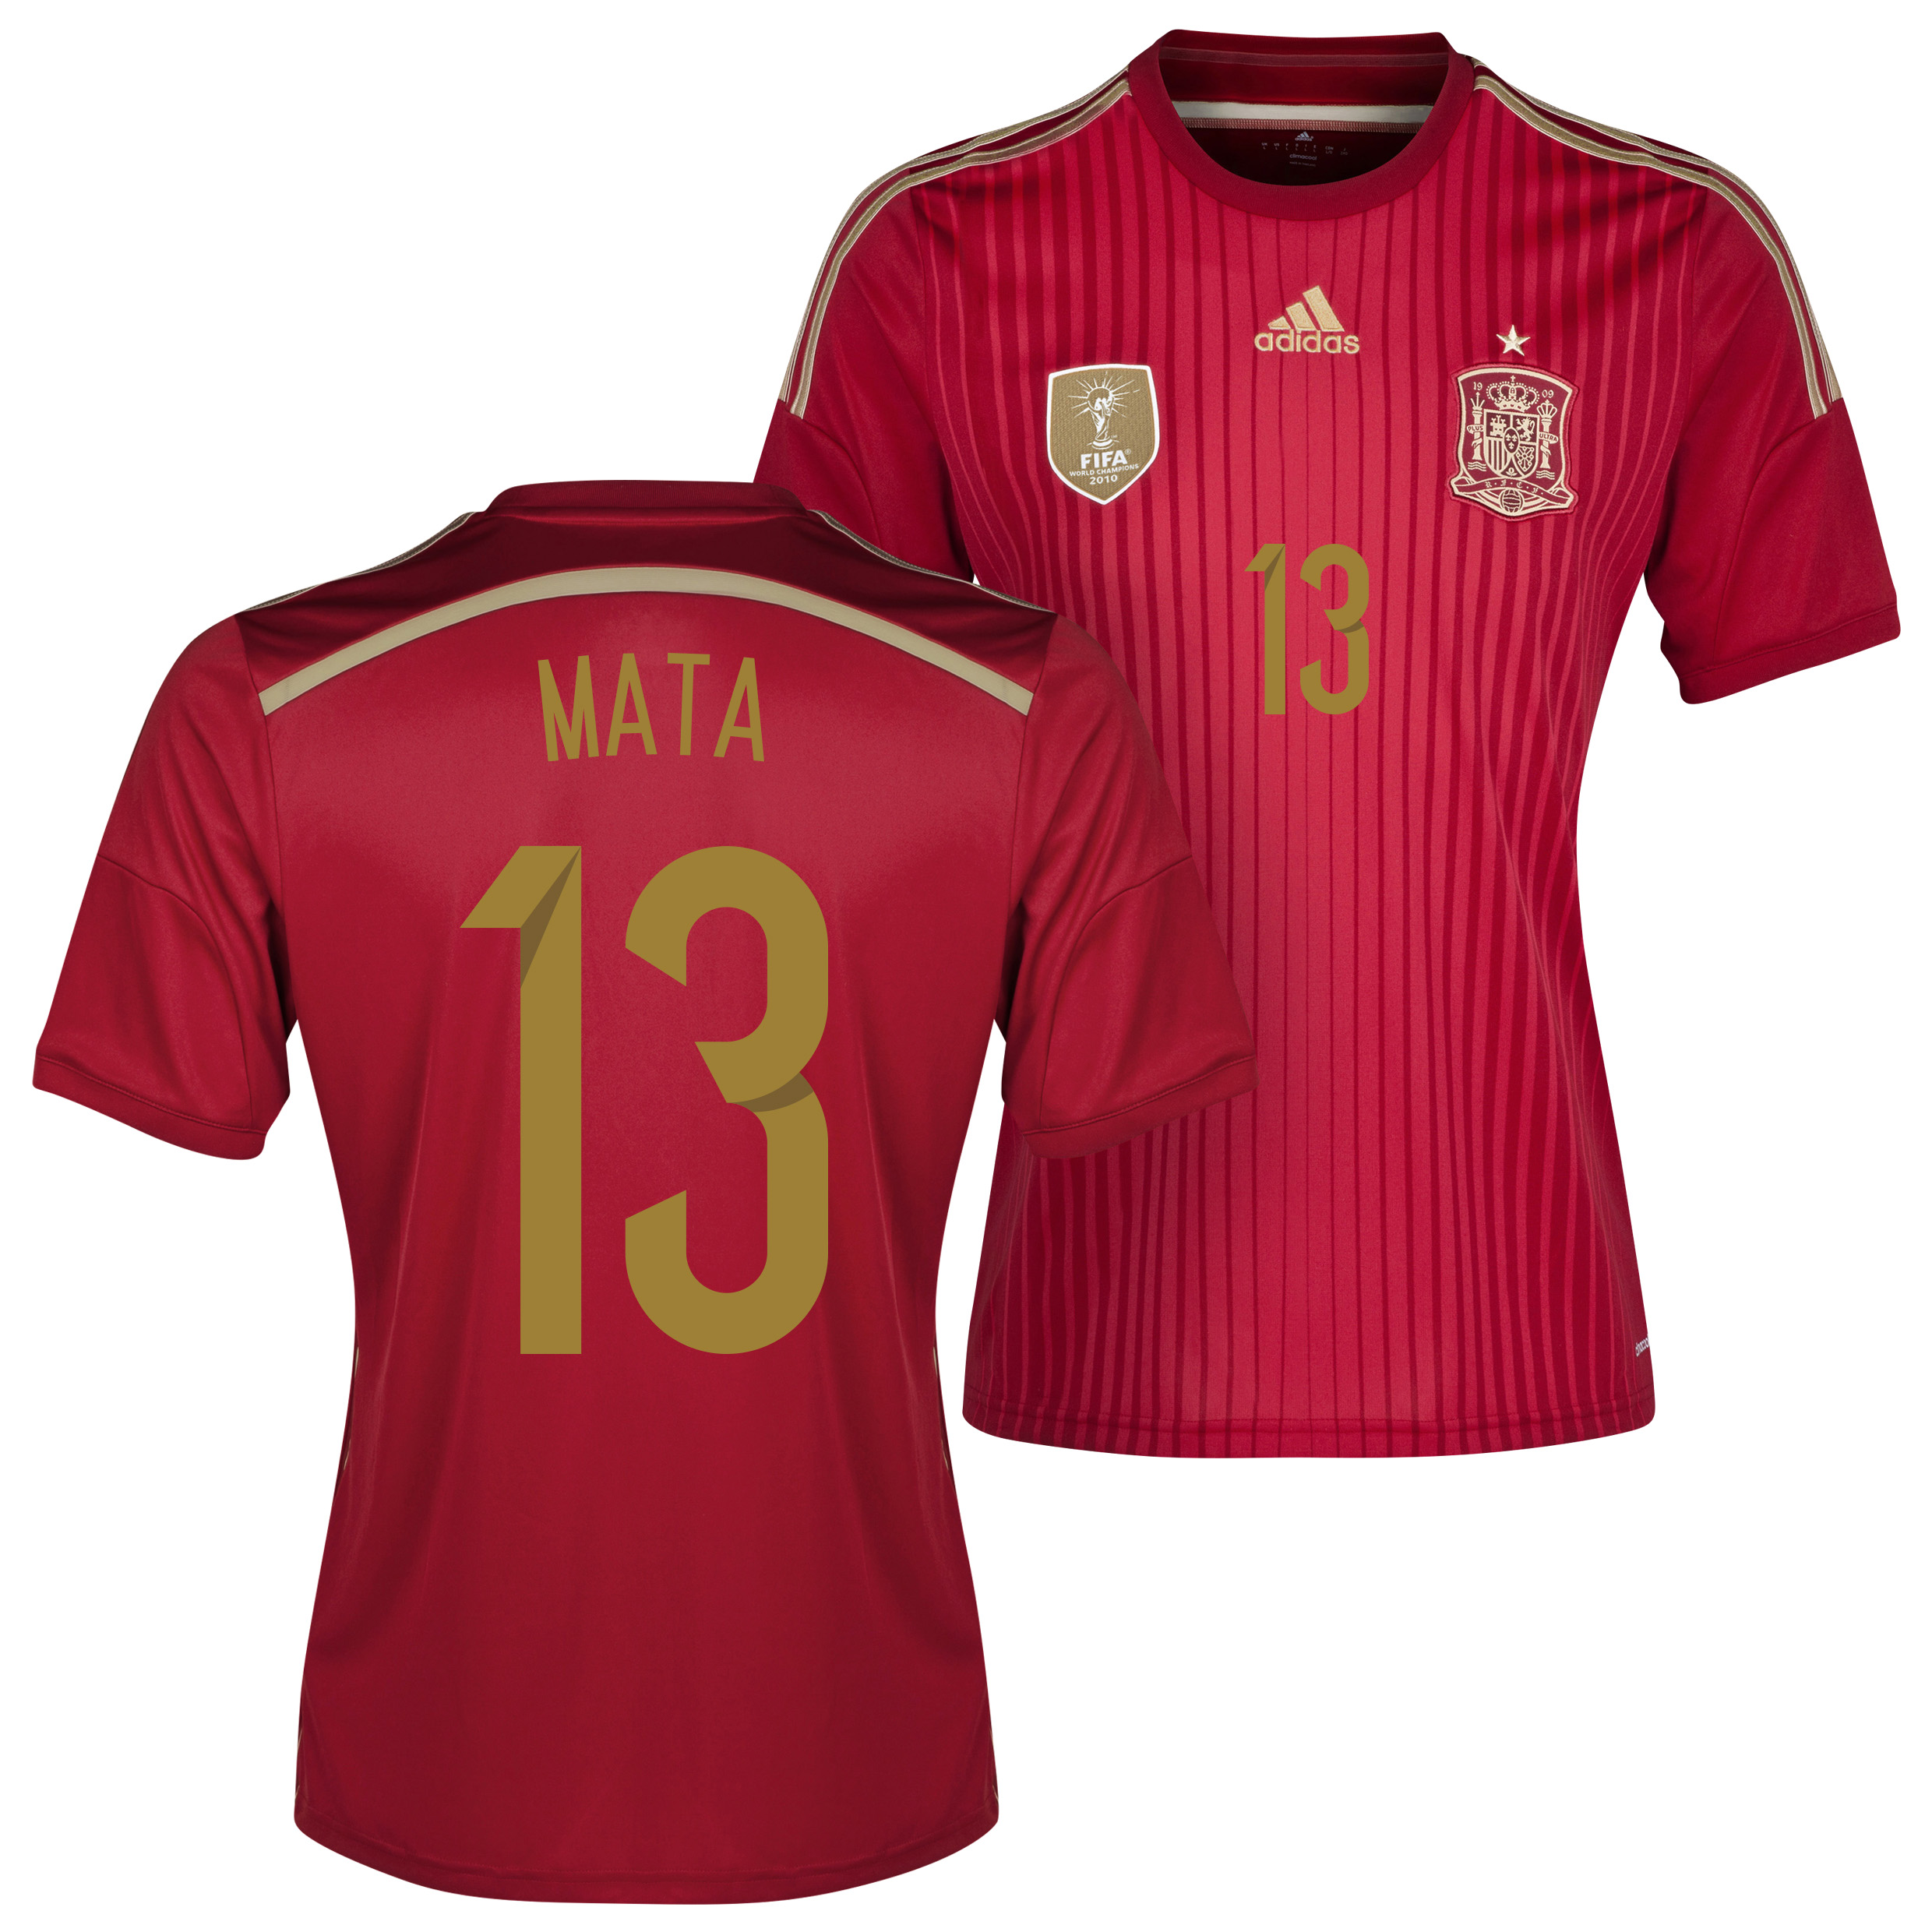 Spain Home Shirt 2013/15 with Mata 13 printing